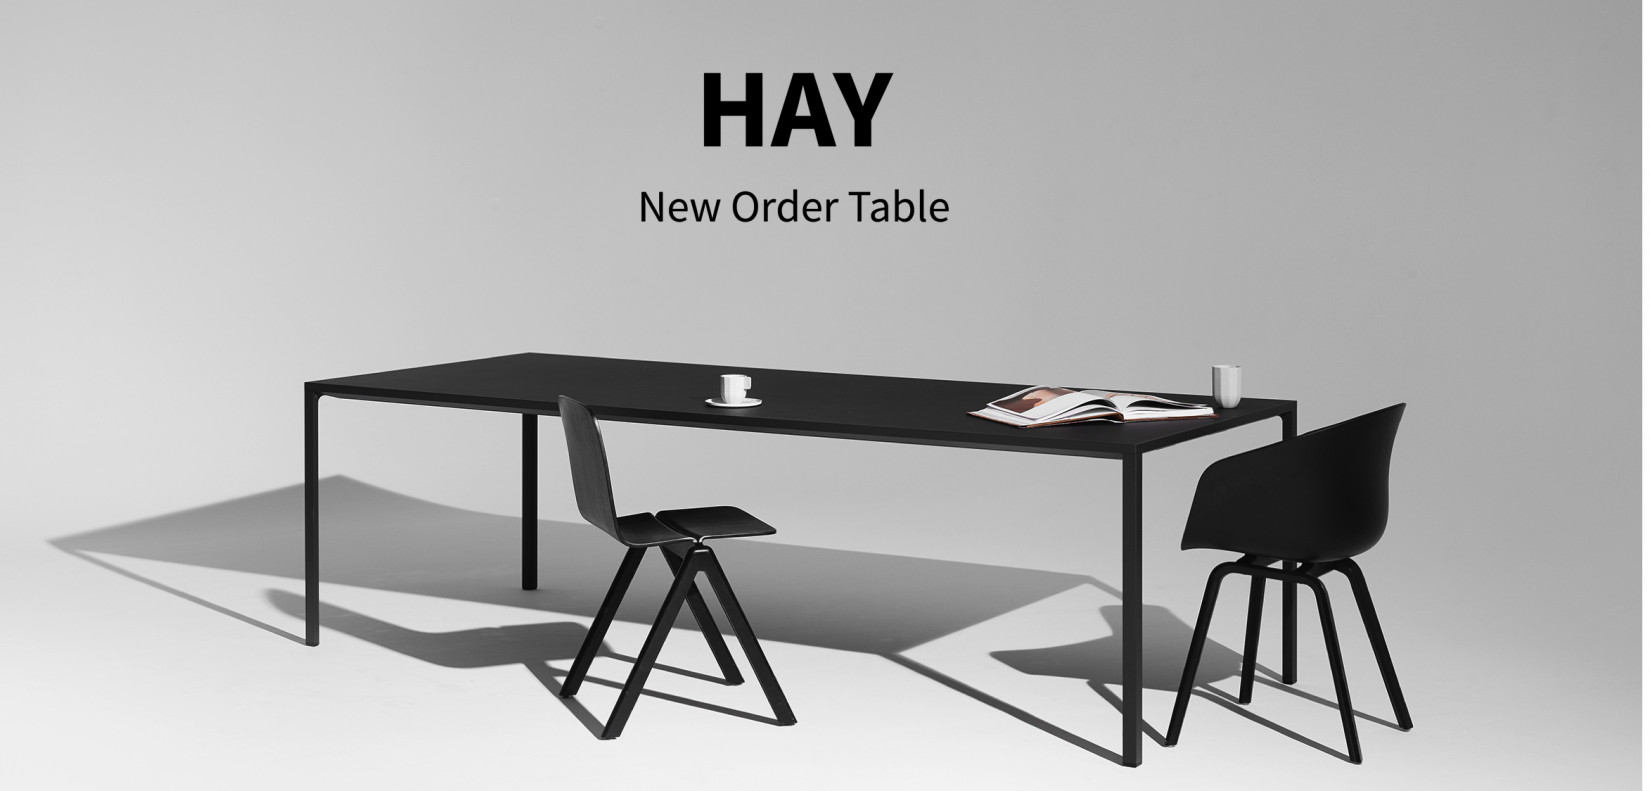 hay new order table. Black Bedroom Furniture Sets. Home Design Ideas